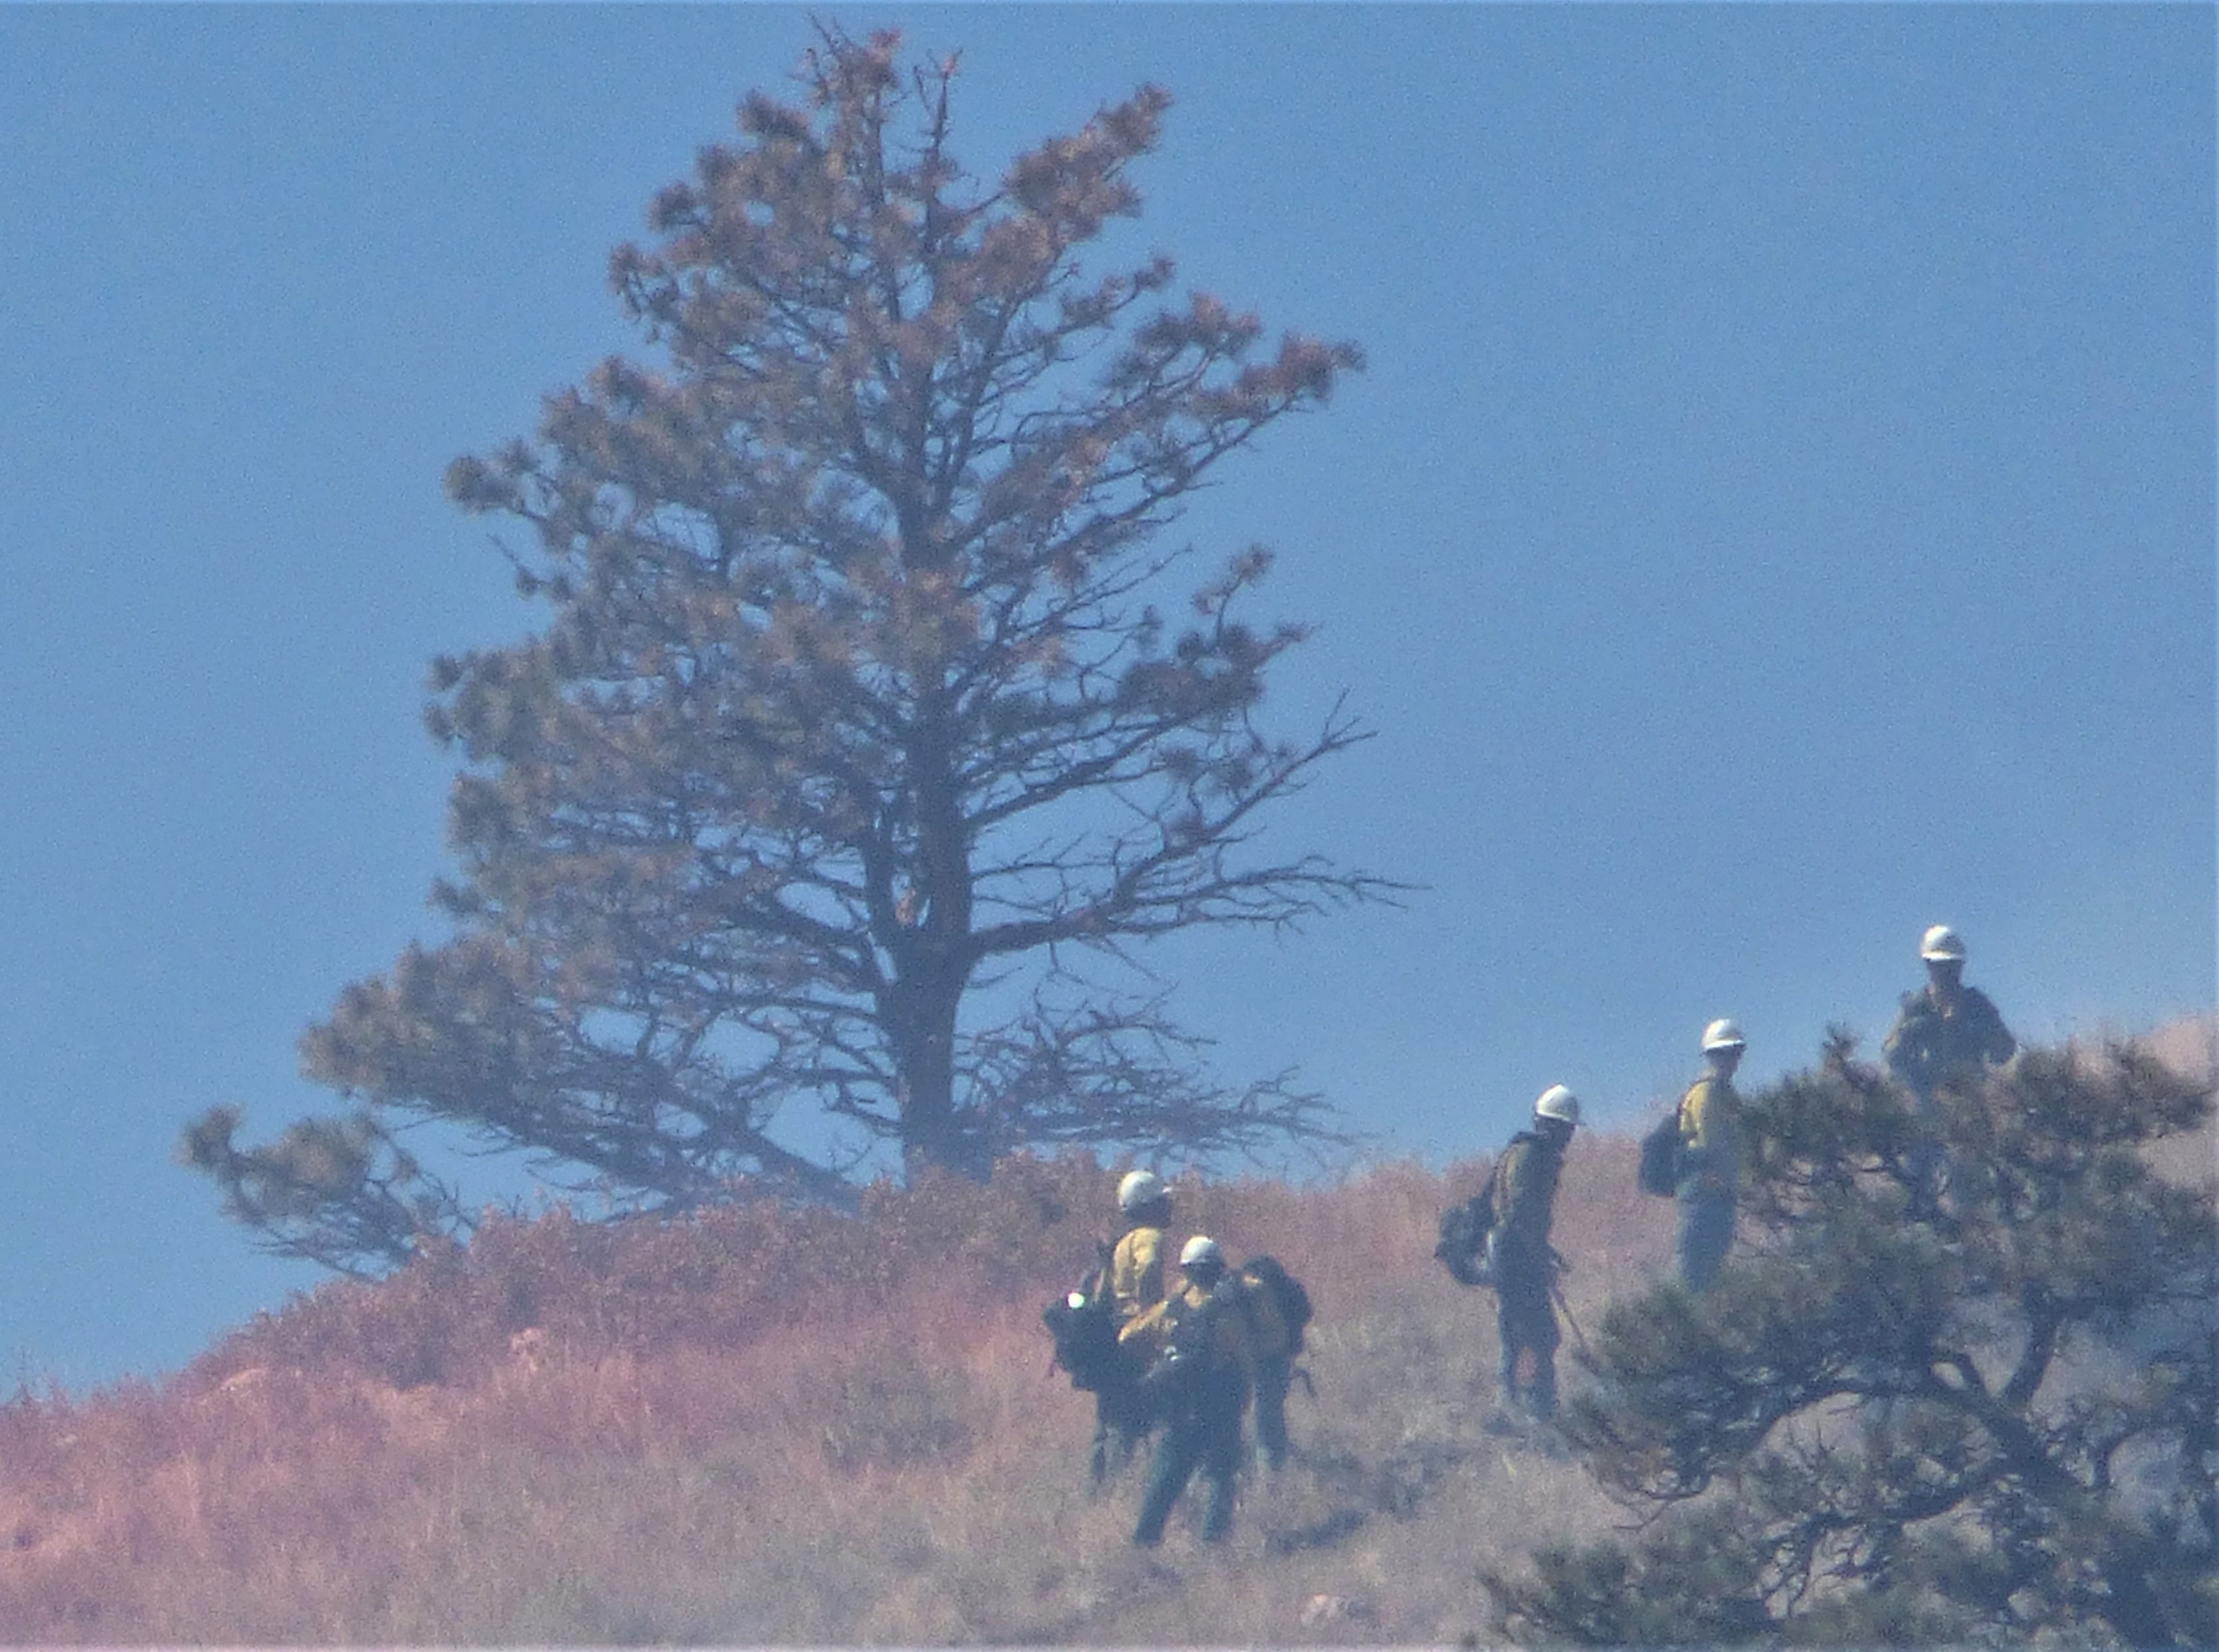 Reader Kristen Peterson, who lives near the Seaman Fire, provided this photo of firefighters working the fire.